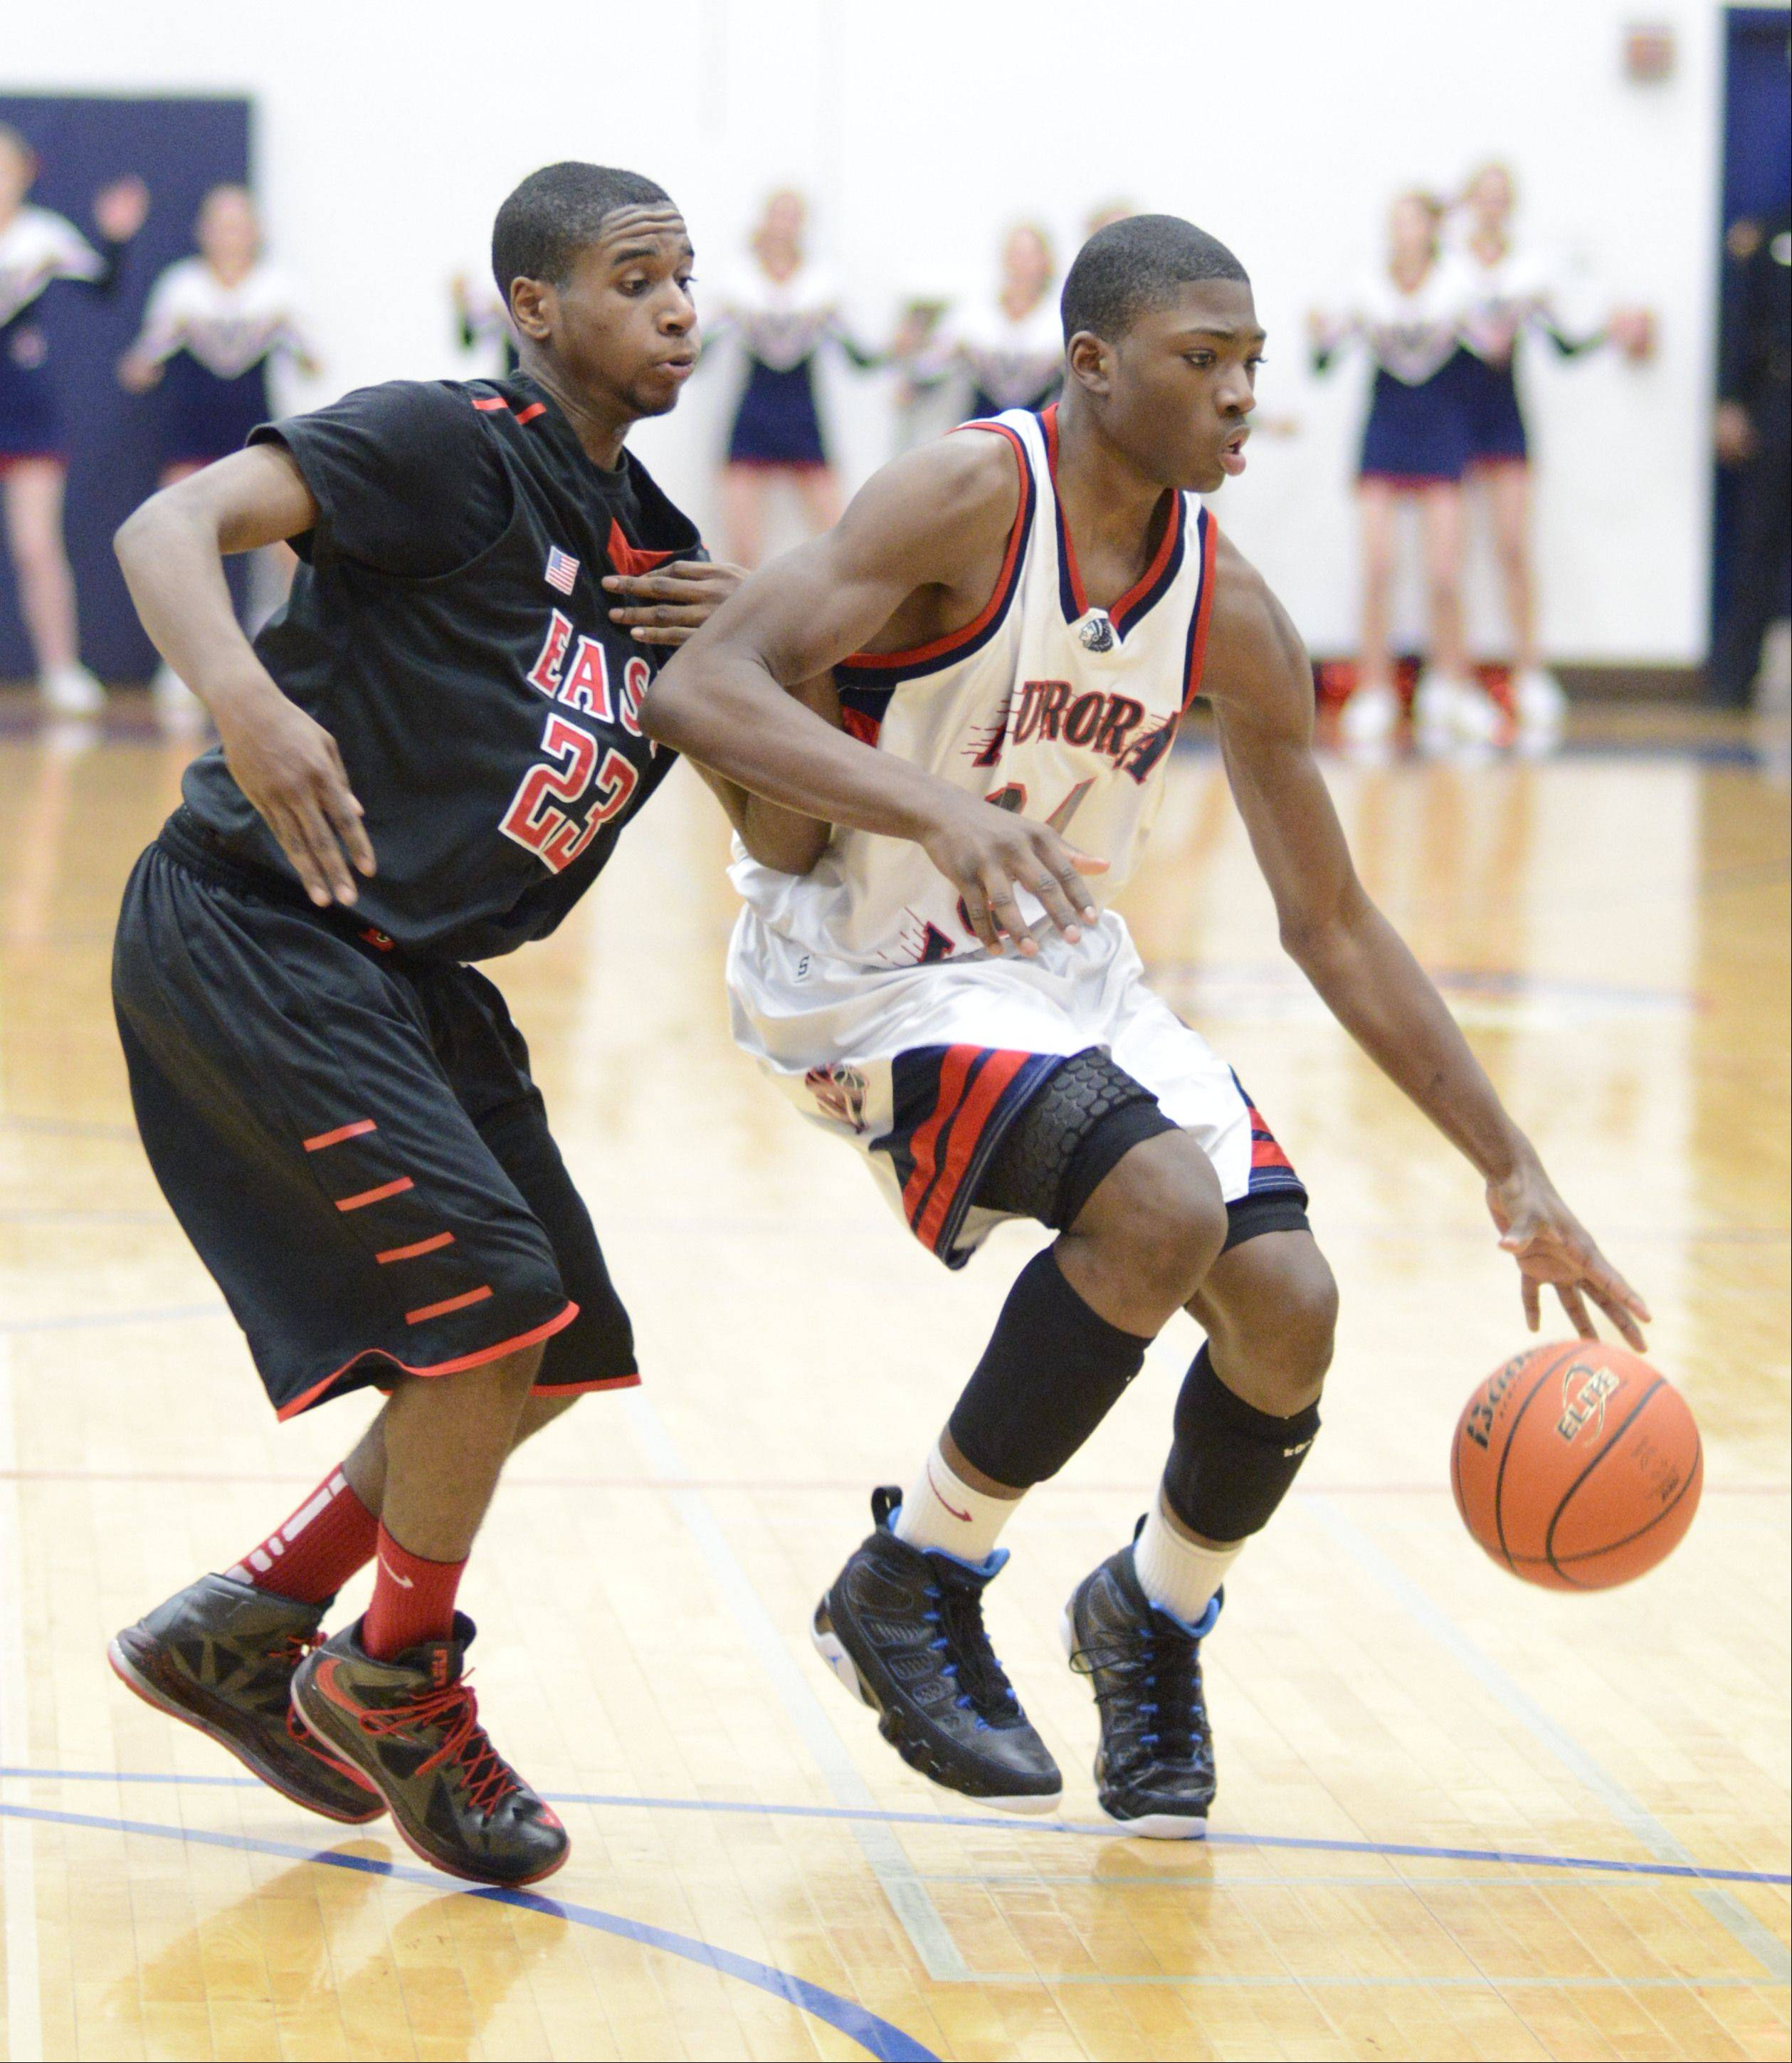 Images from the Glenbard East vs. West Aurora basketball game on Wednesday, February 20, 2013.